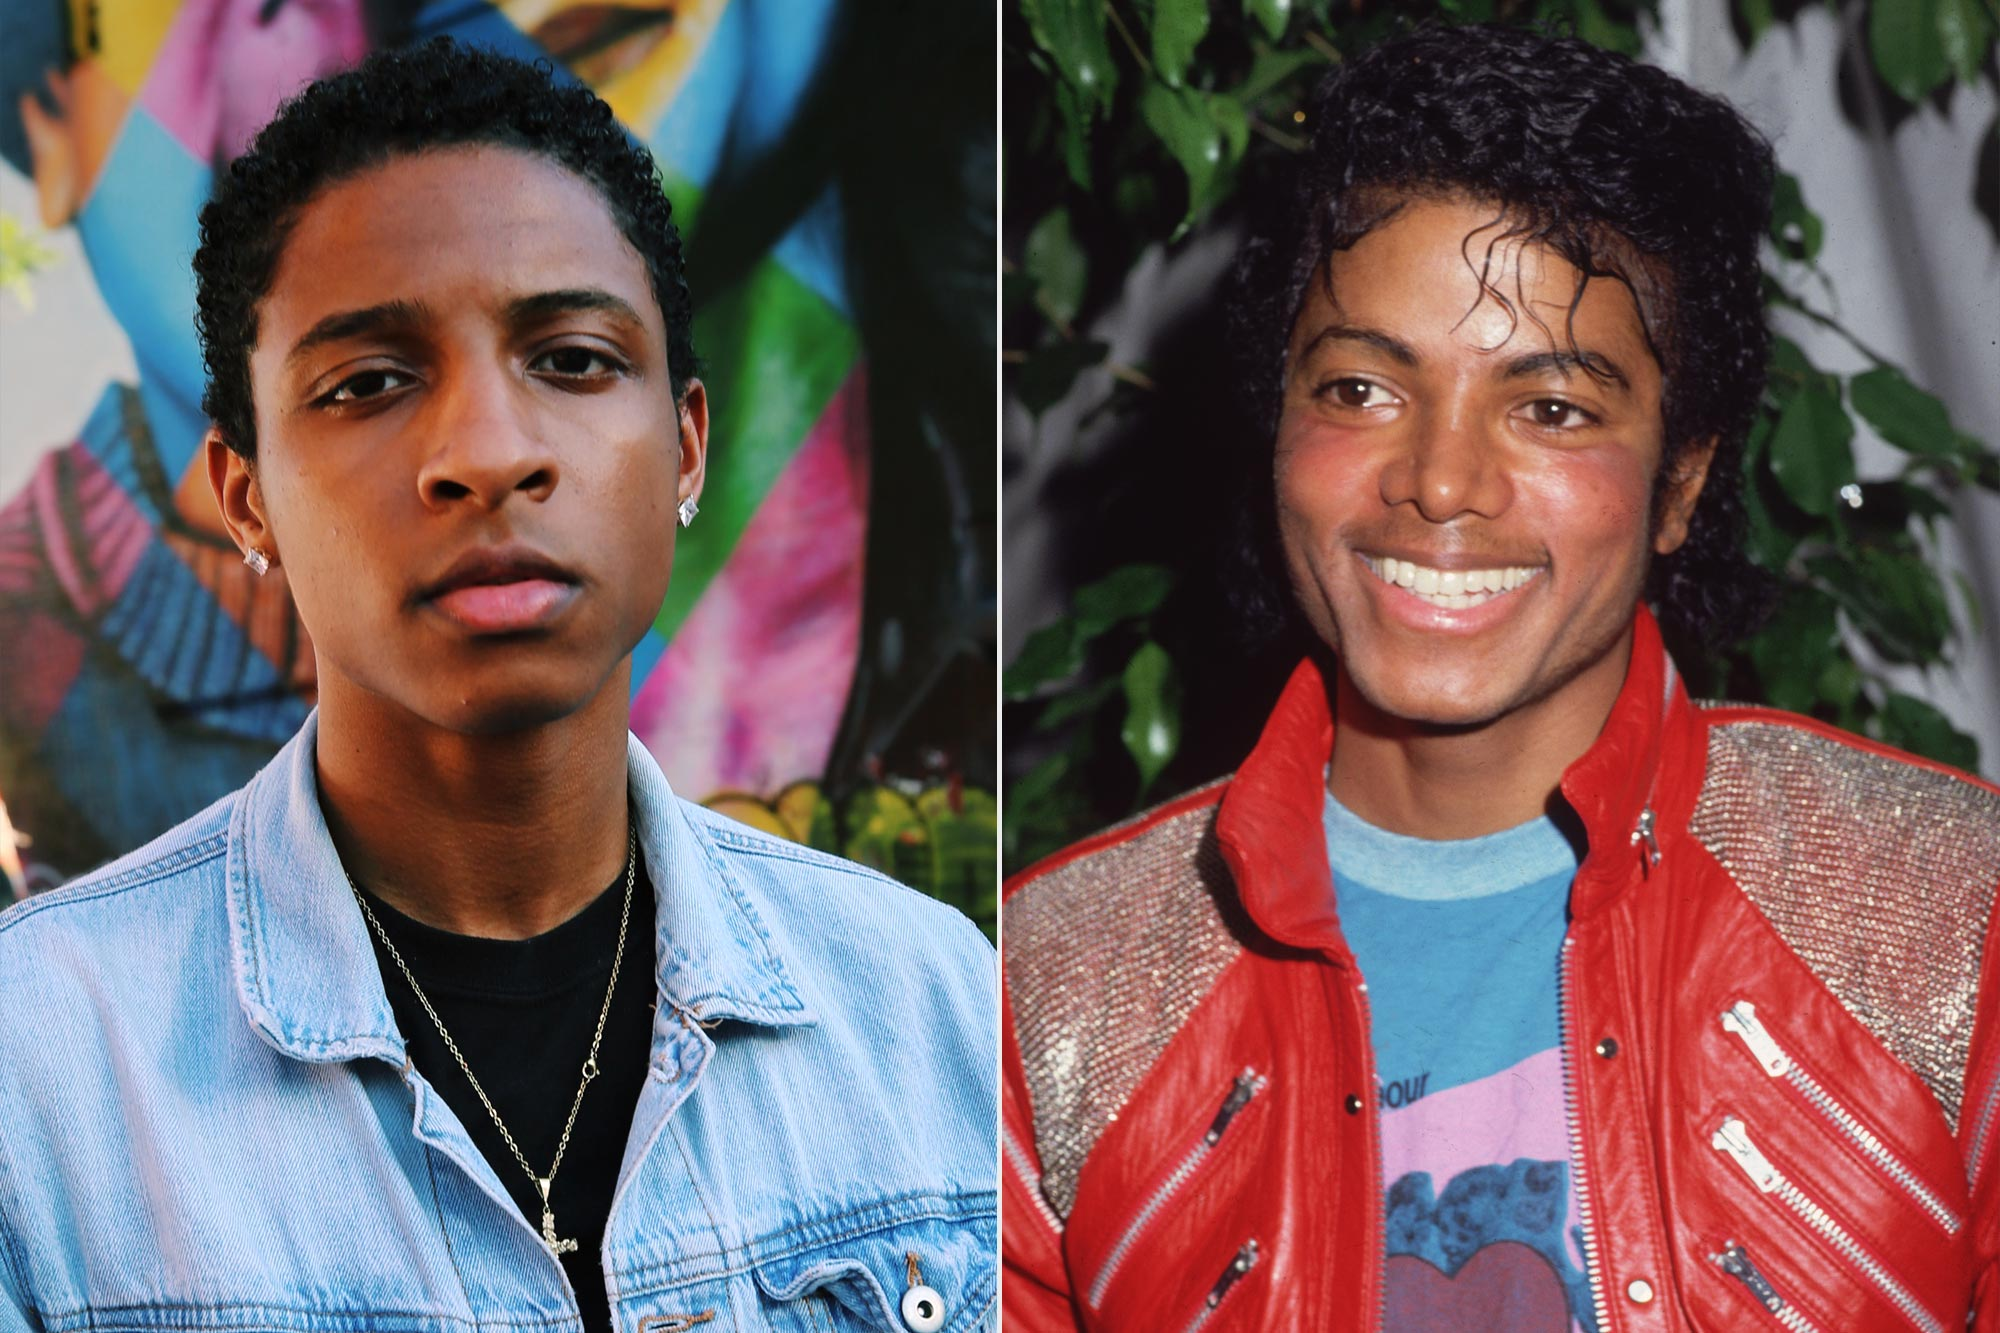 Myles Frost and Michael Jackson